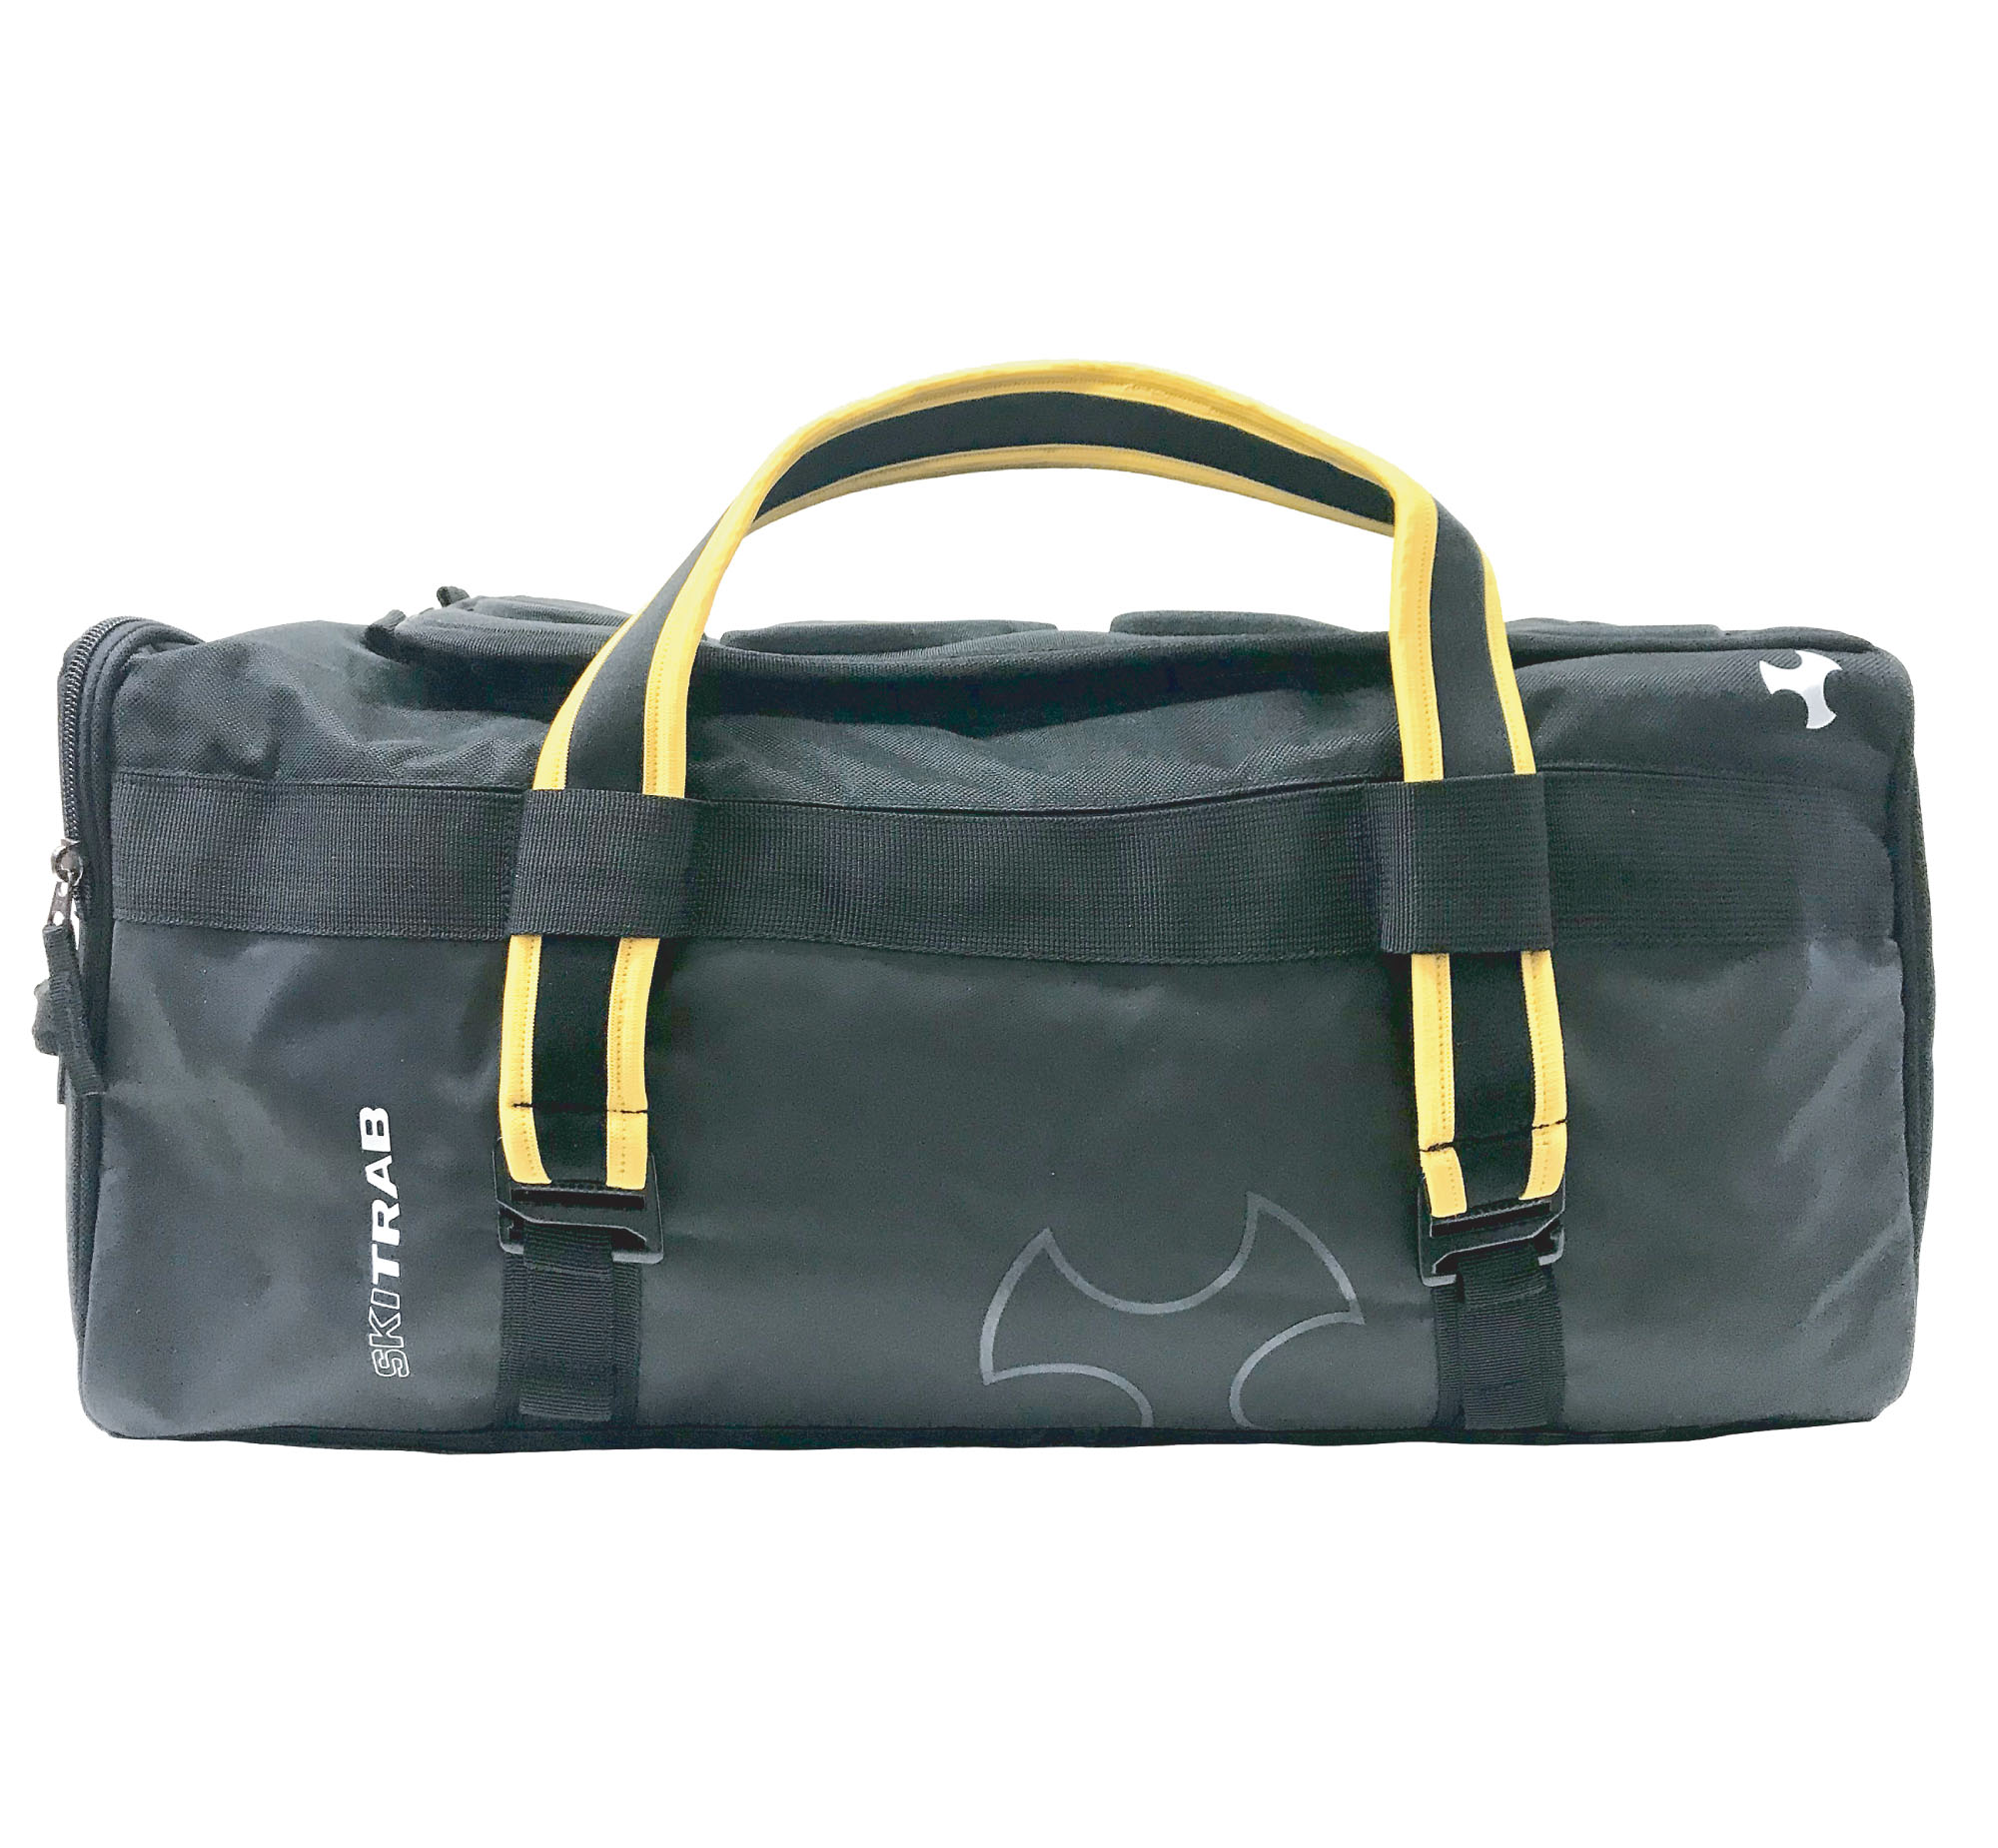 52075_altavia travel bag